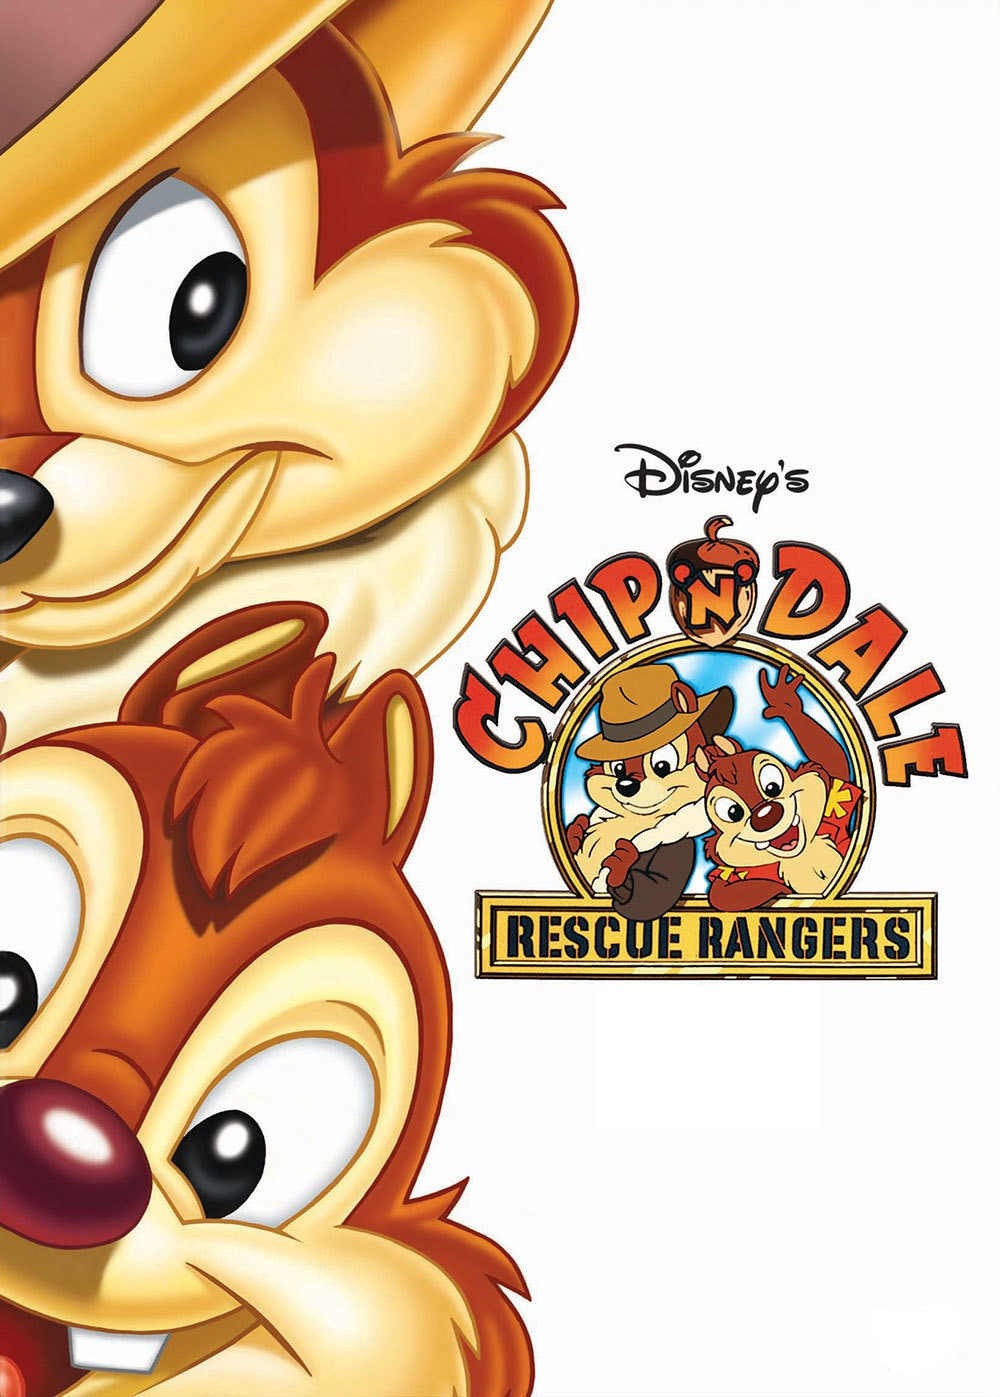 Chip 'n' Dale Rescue Rangers Products